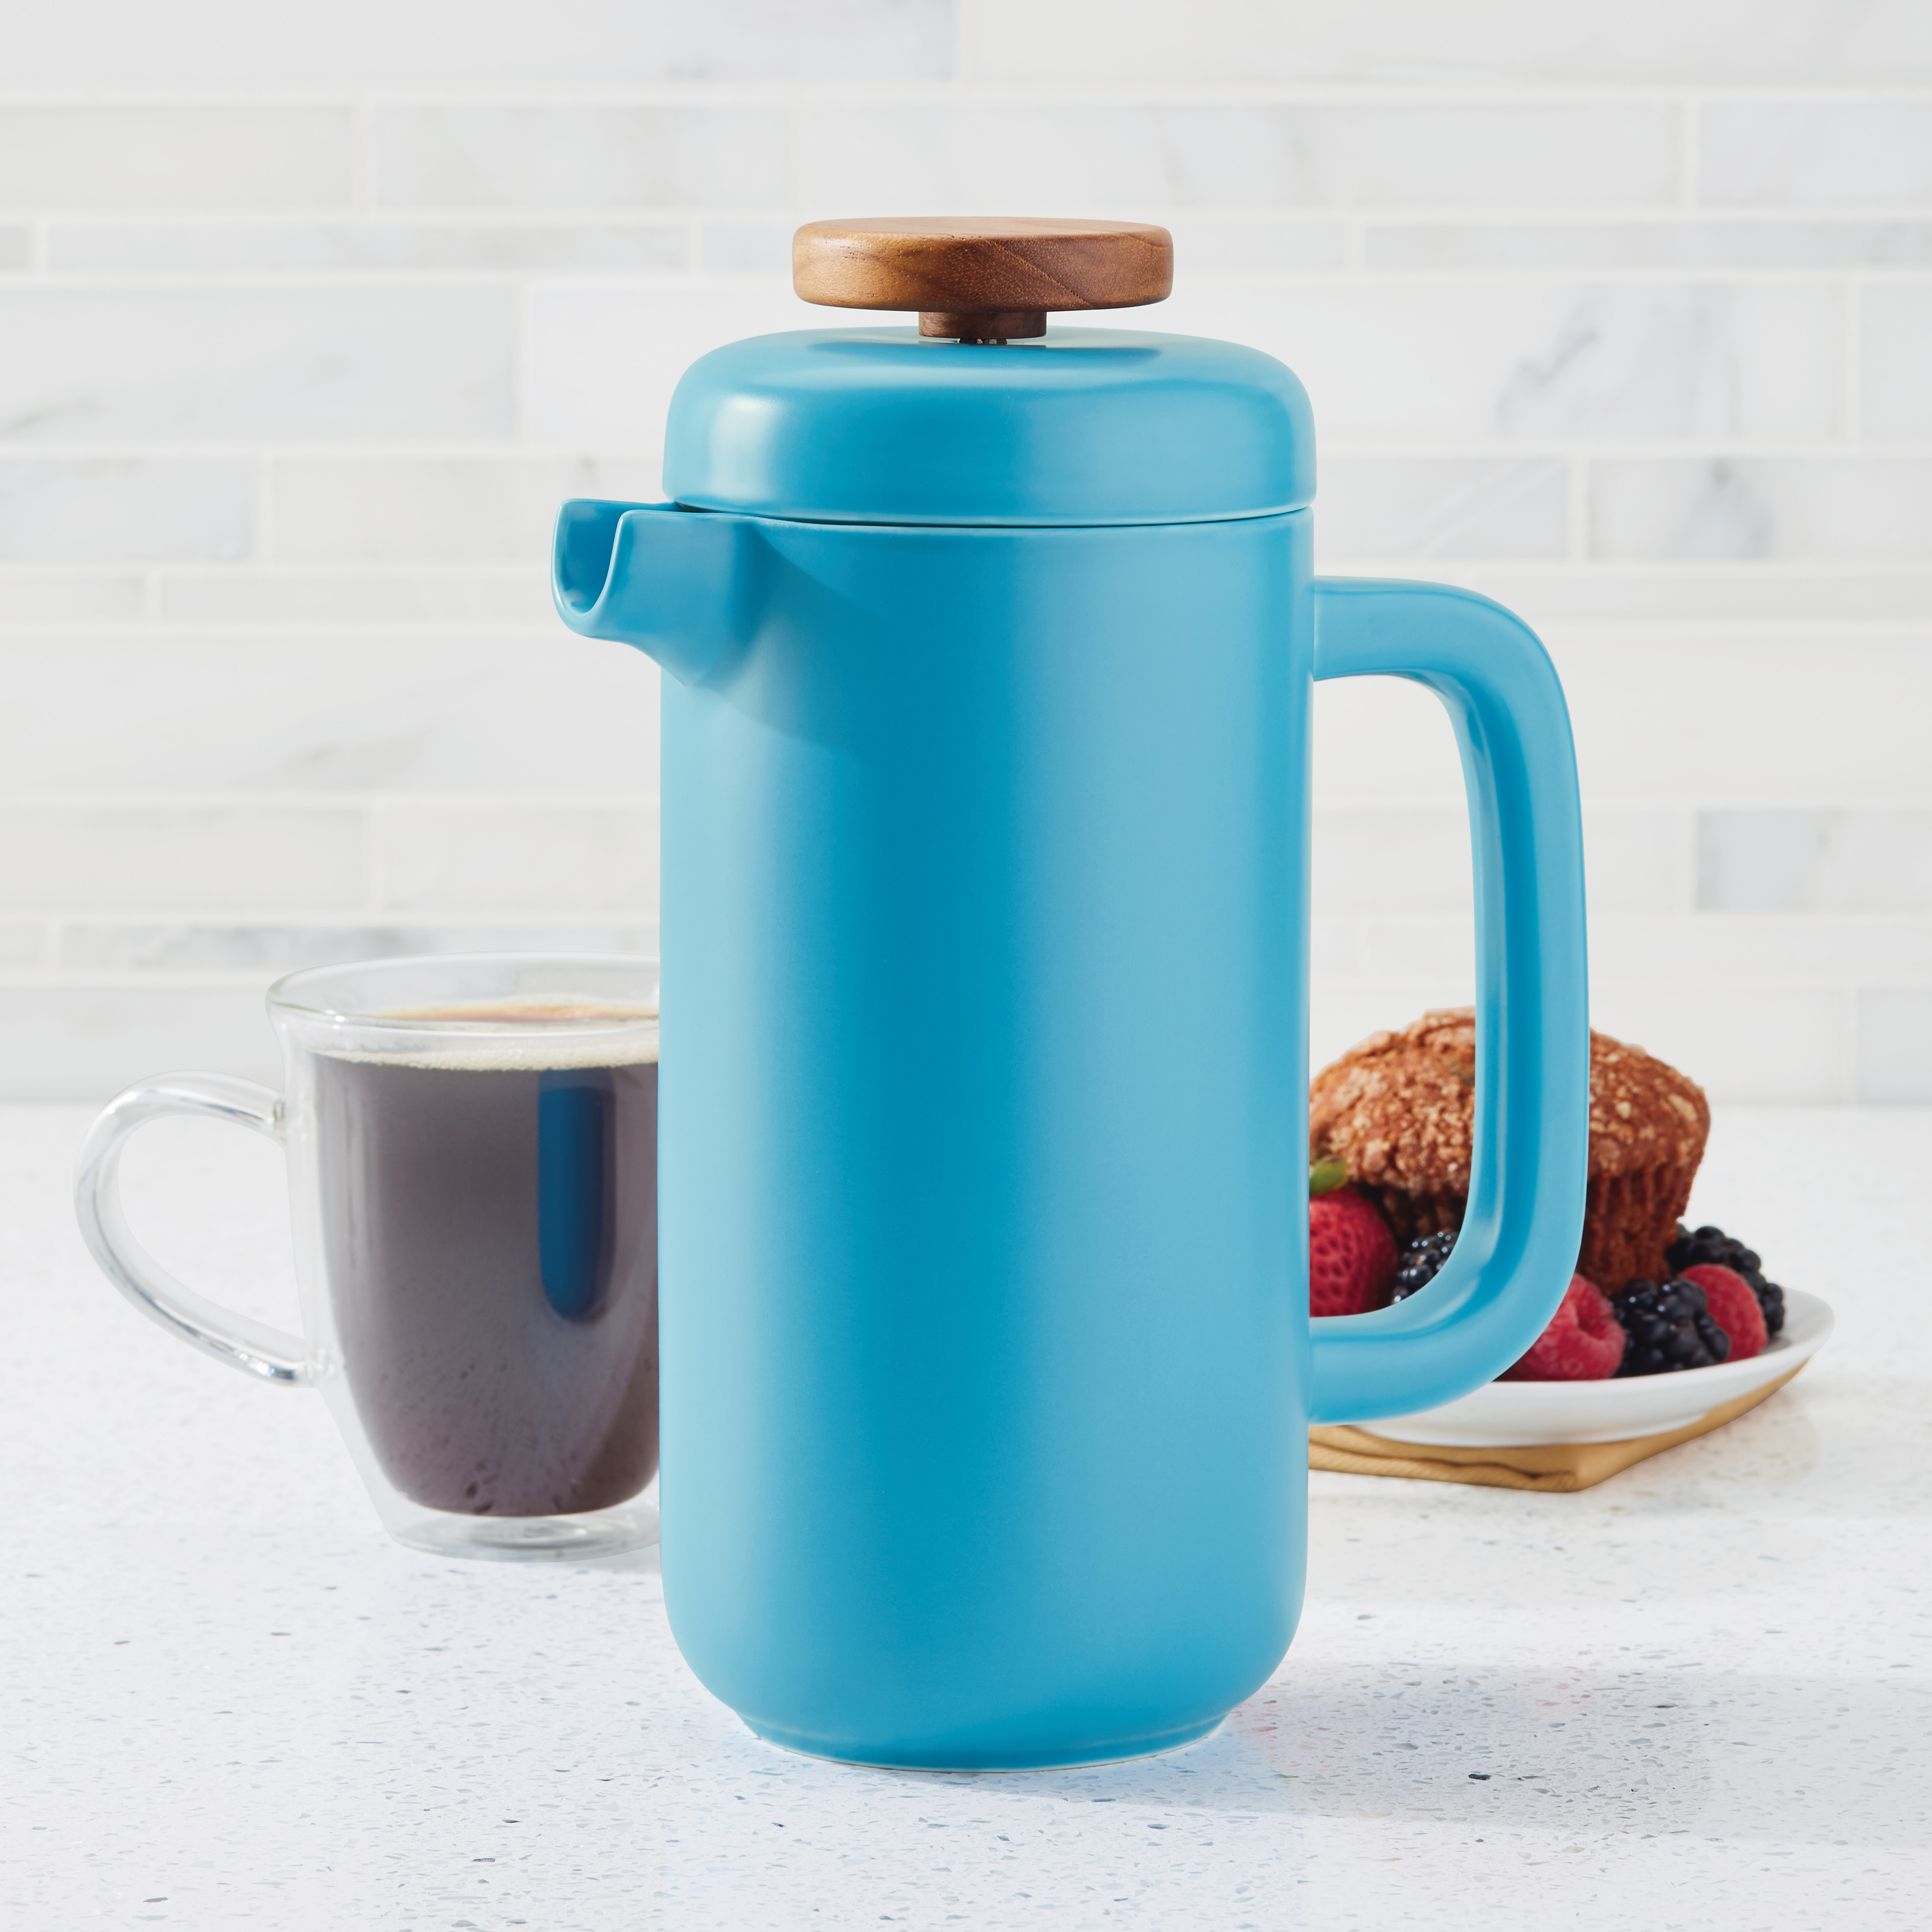 BonJour Ceramic Coffee and Tea 8-Cup Ceramic French Press, Aqua